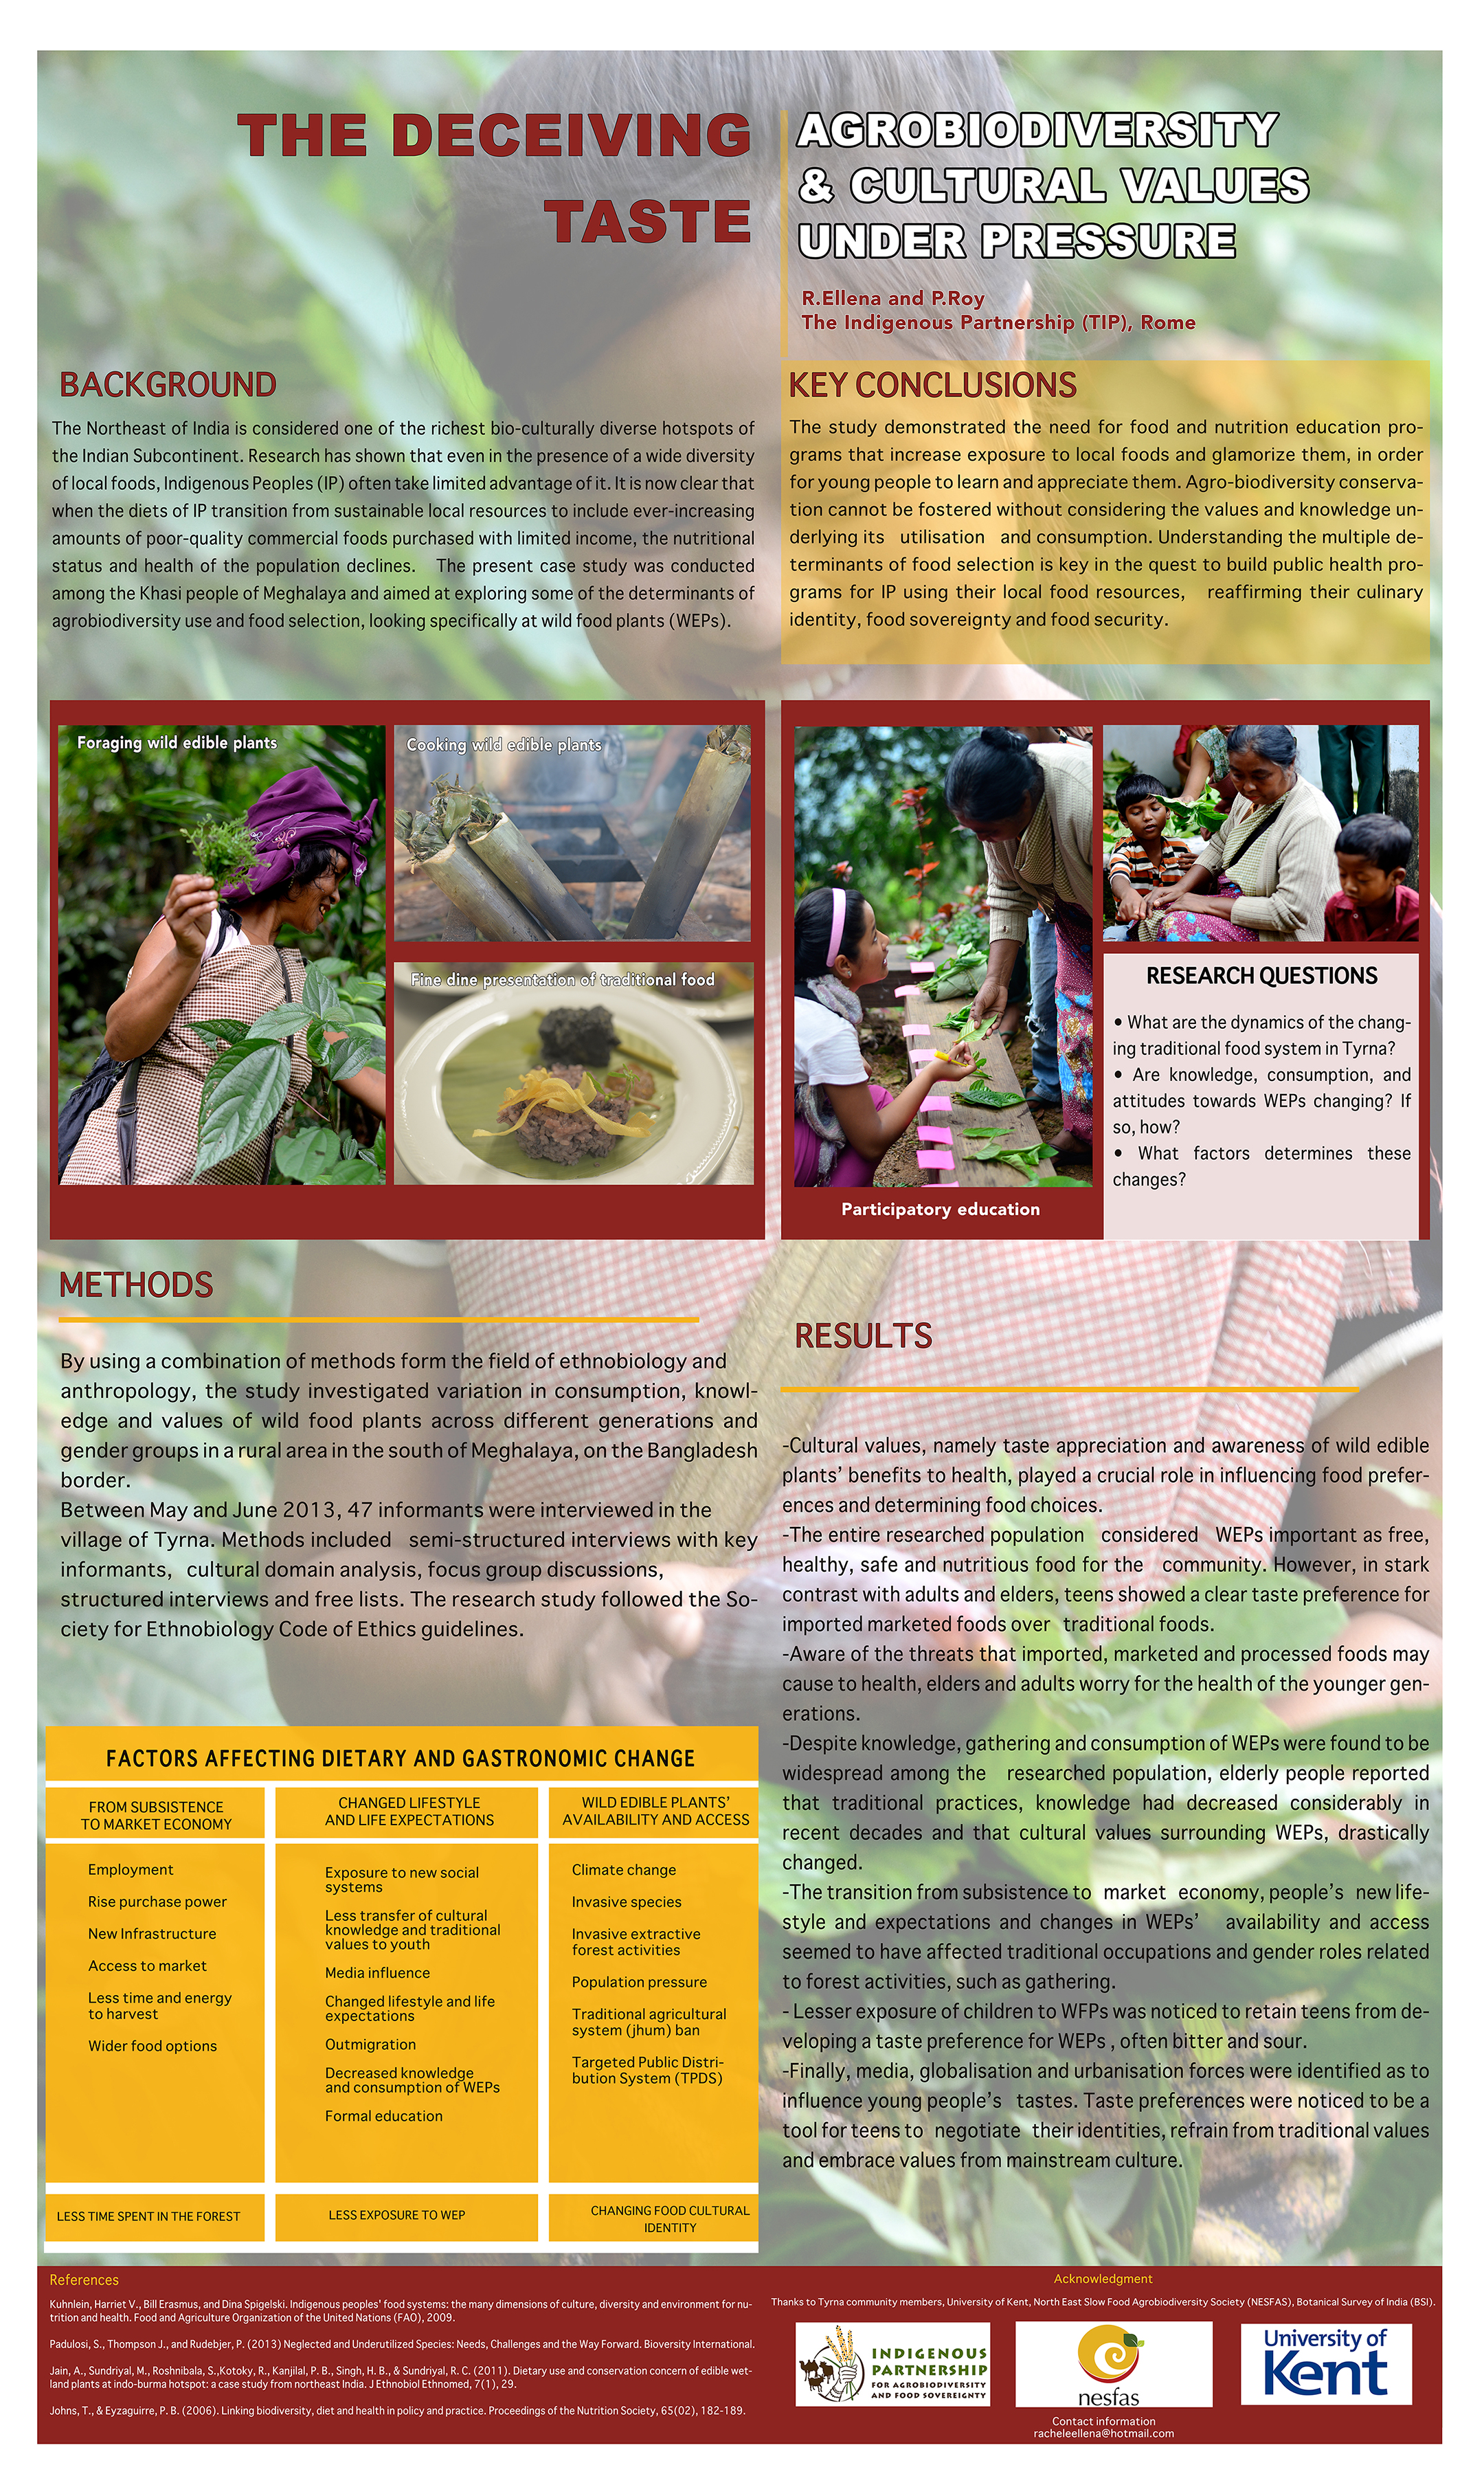 """The poster highlighted """"The Deceiving Taste: Agrobiodiversity and Cultural Values Under Pressure"""" a study done by Phrang Roy (Coordinator TIP, and R. Ellena, Reseach officer, TIP, Rome)."""